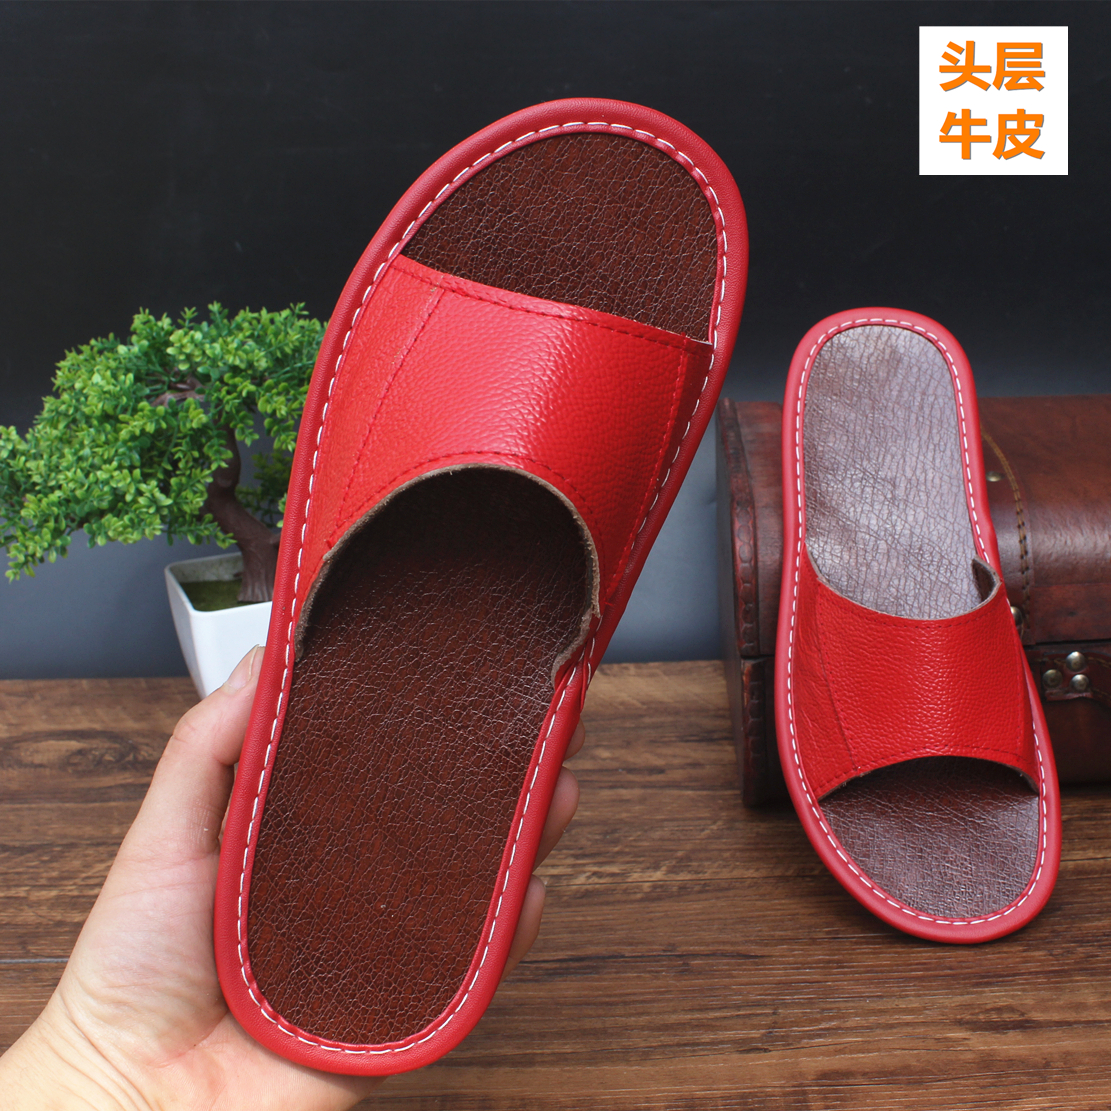 Leather [new] mens home leather through head rubber bottom womens floor anti slip soft bottom slippers in spring and summer